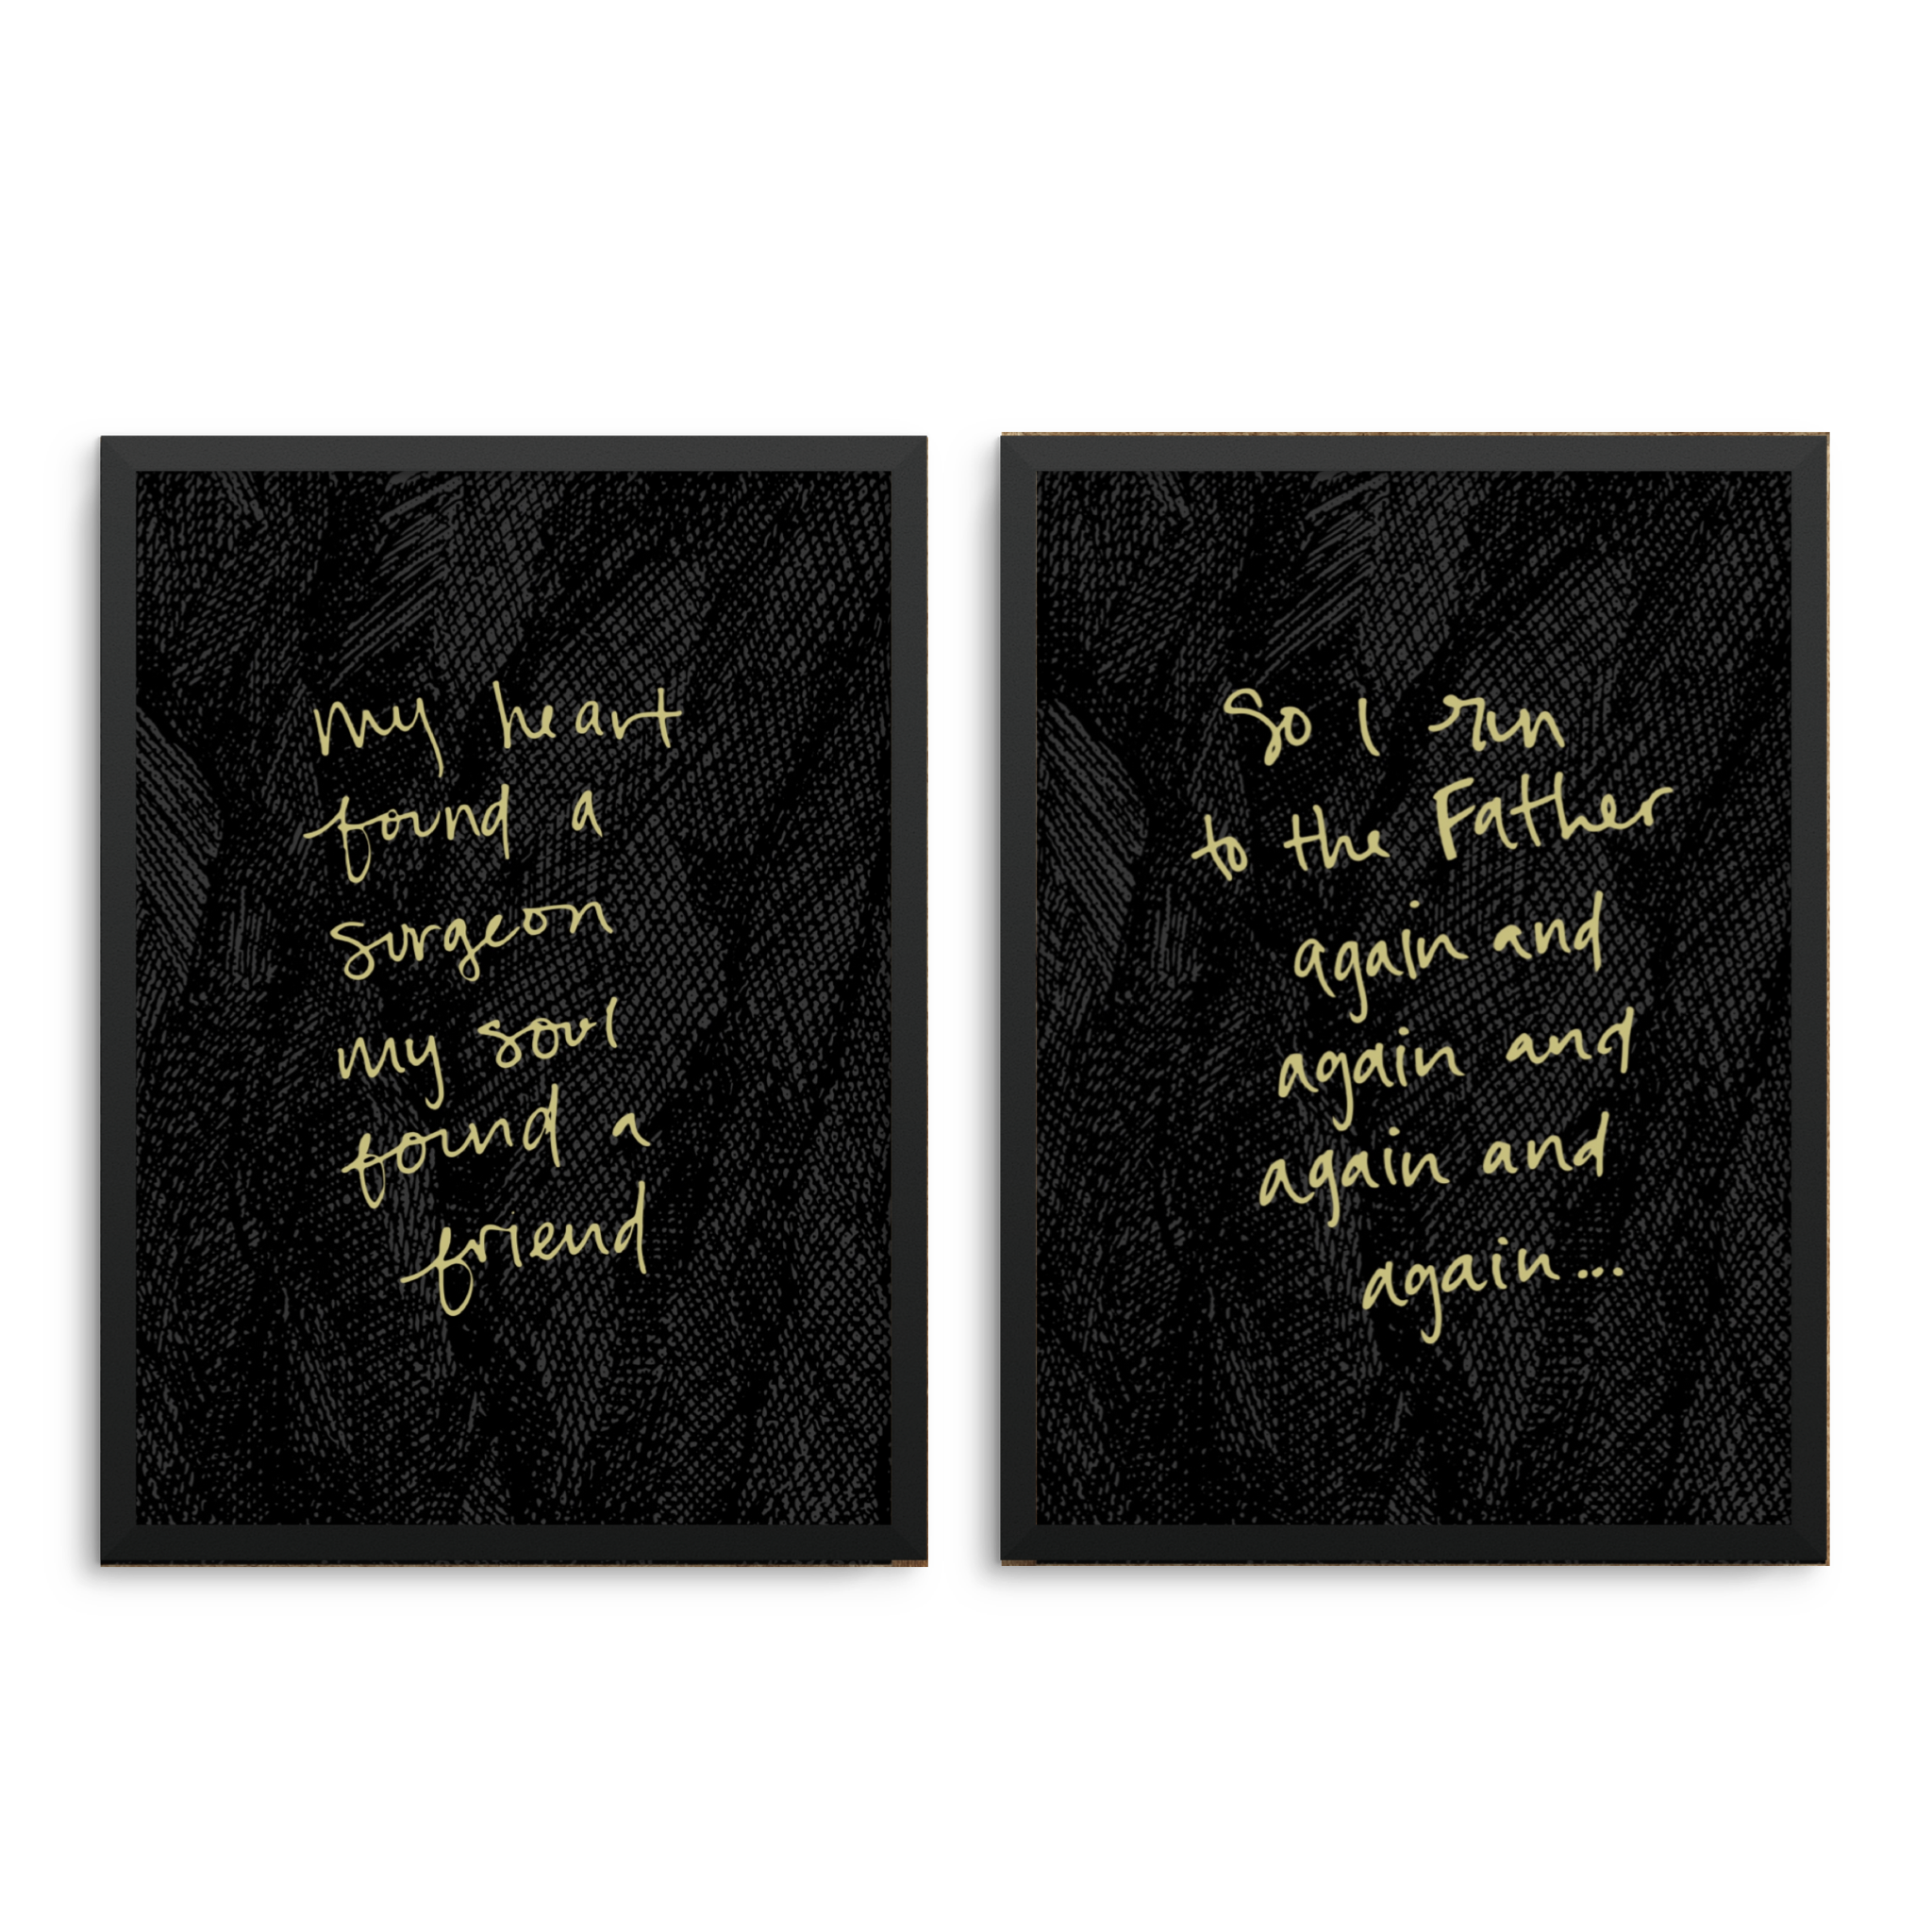 RUN TO THE FATHER - 8x10 LYRIC PRINT SET